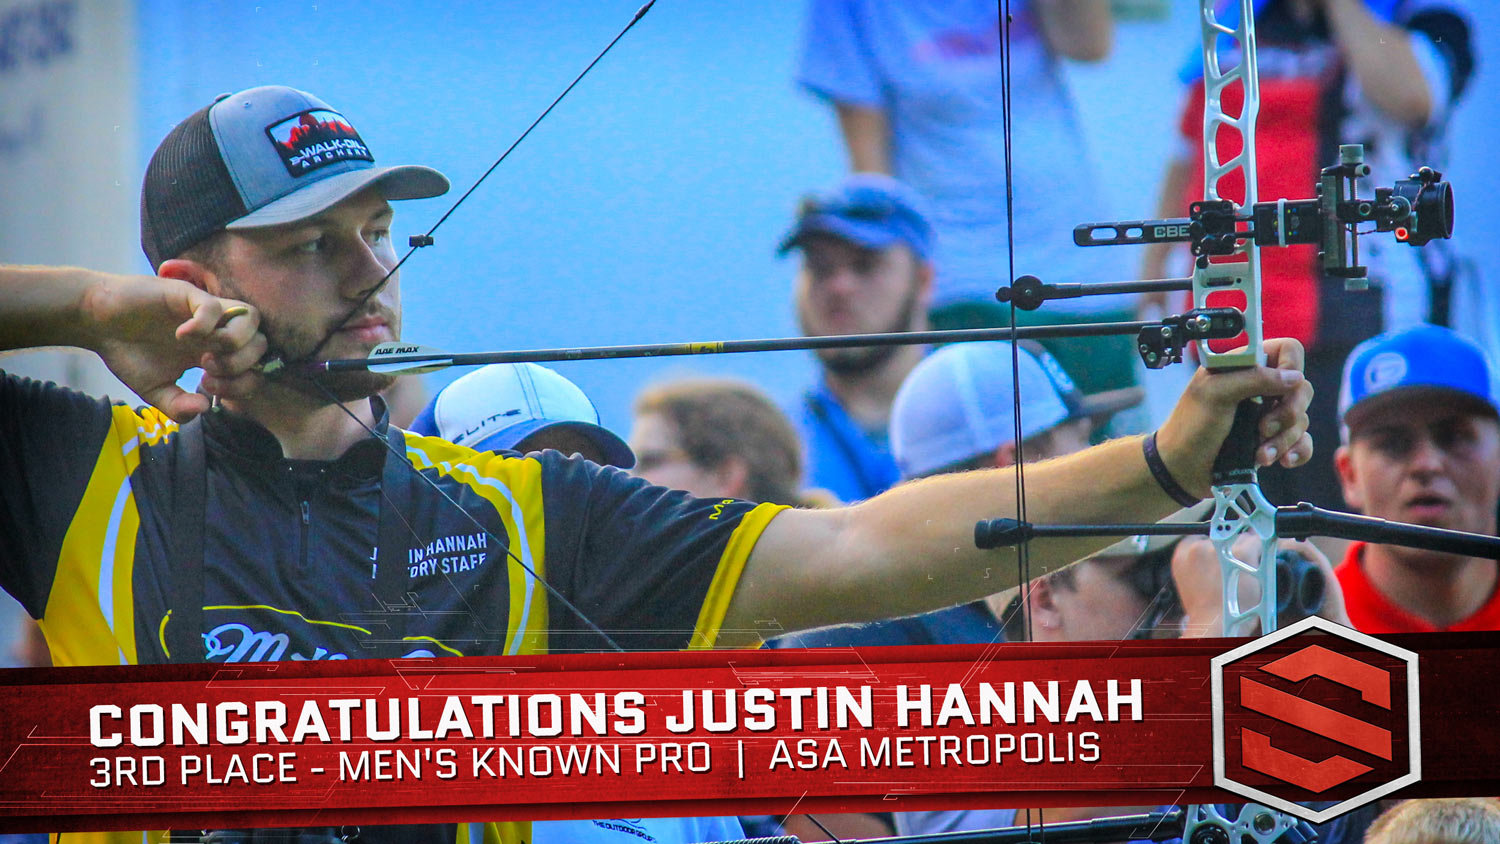 ASA Metropolis - Justin Hannah Wins 3rd Place for Men's Known Pro using his Scott Archery Longhorn Pro